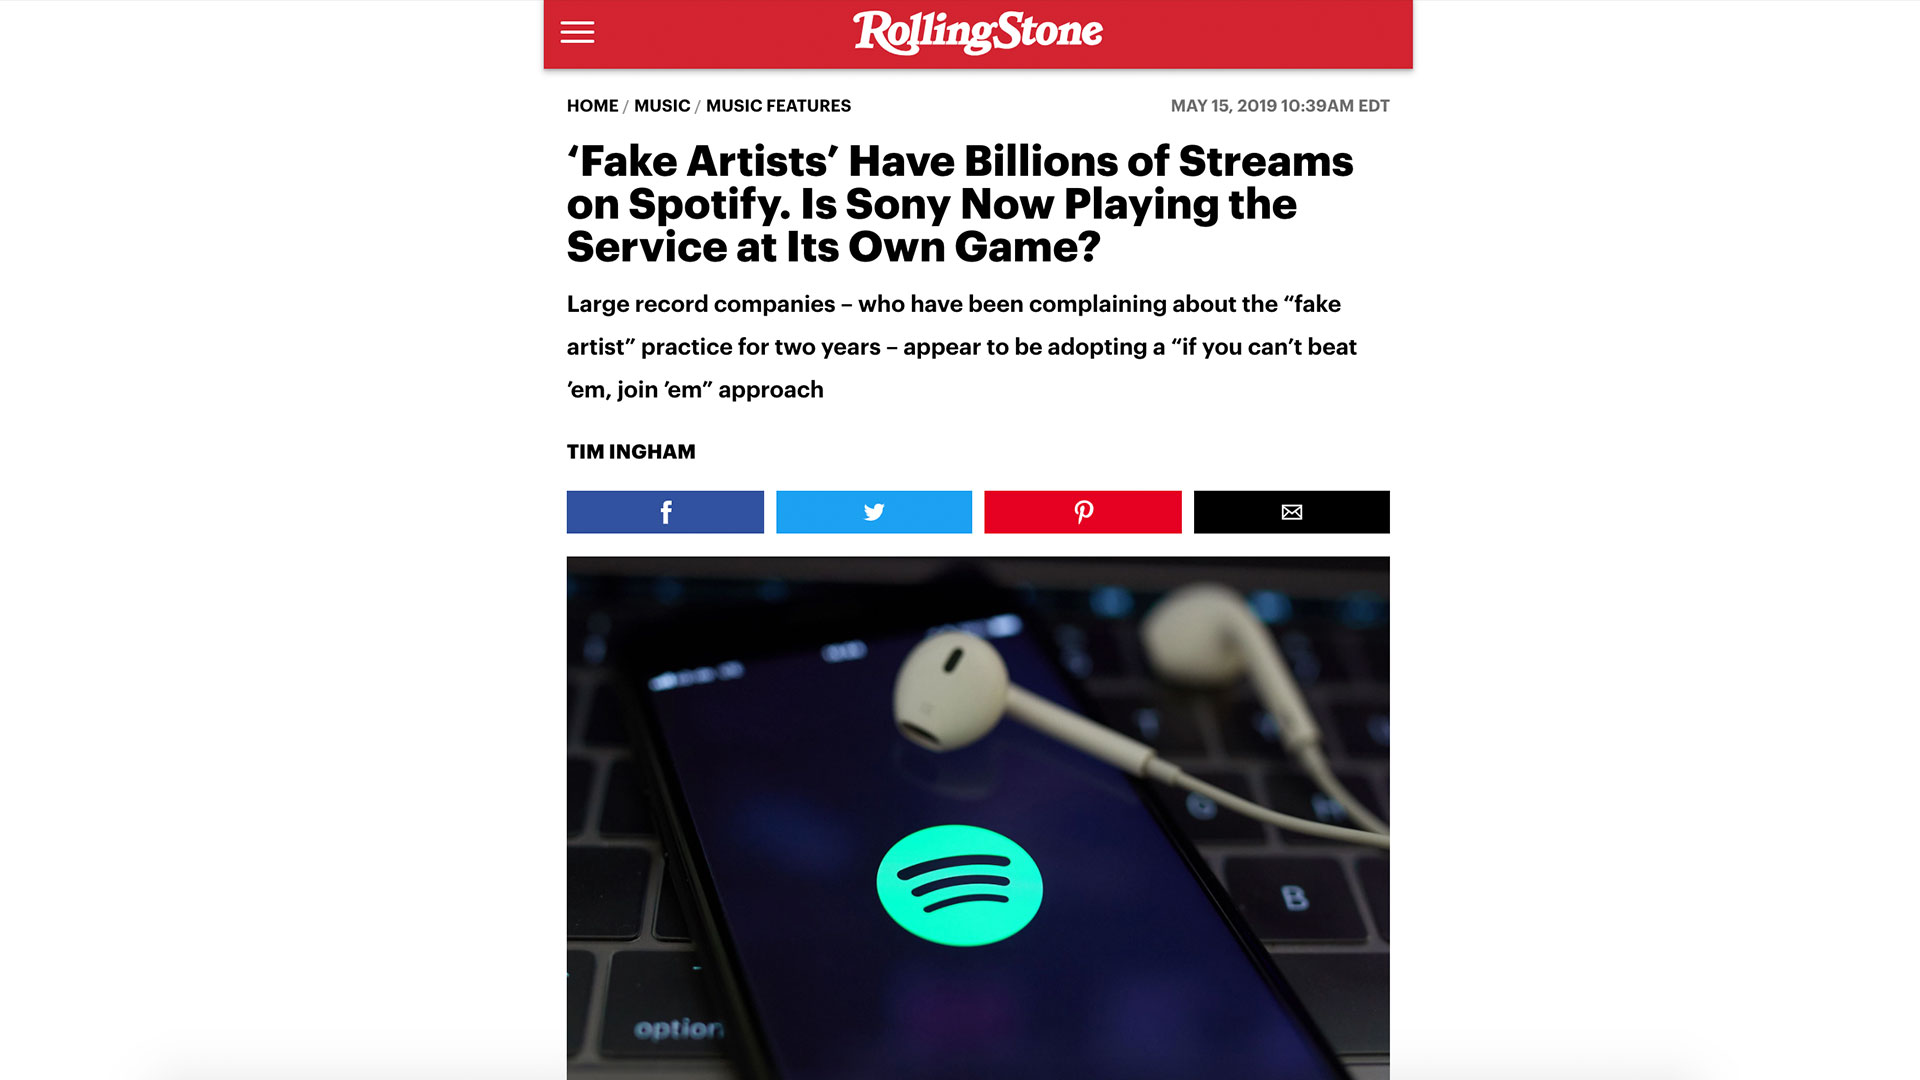 Fairness Rocks News 'Fake Artists' Have Billions of Streams on Spotify. Is Sony Now Playing the Service at Its Own Game?